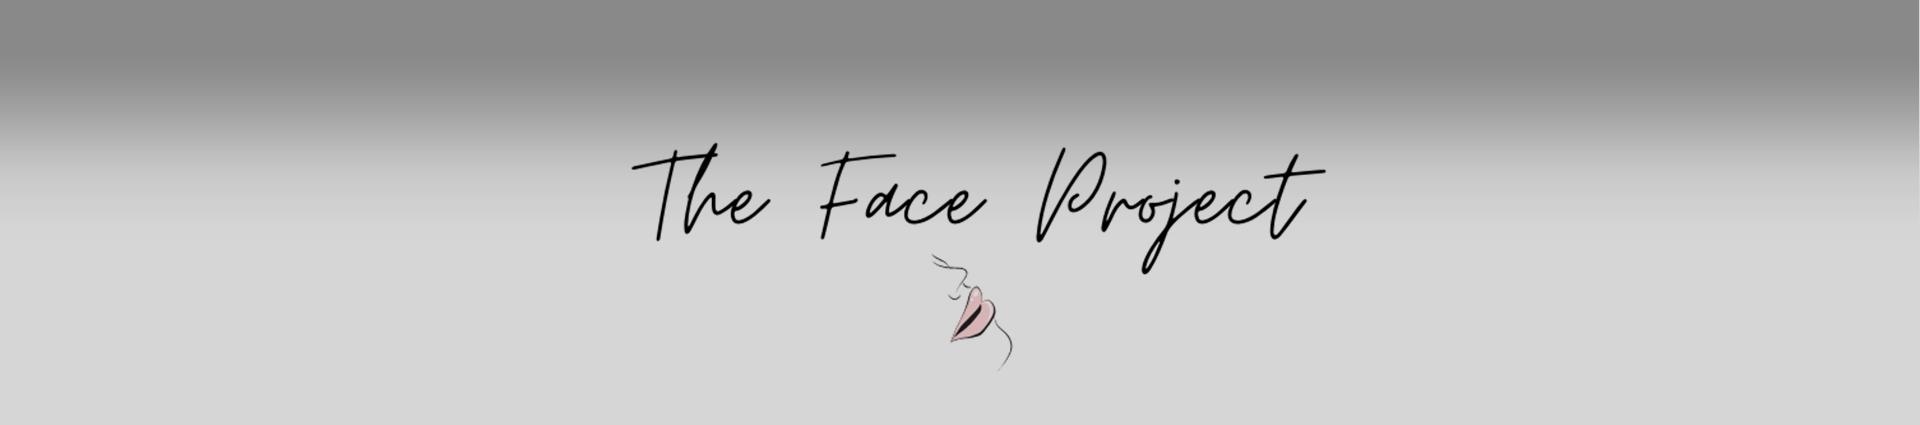 The Face Project Banner